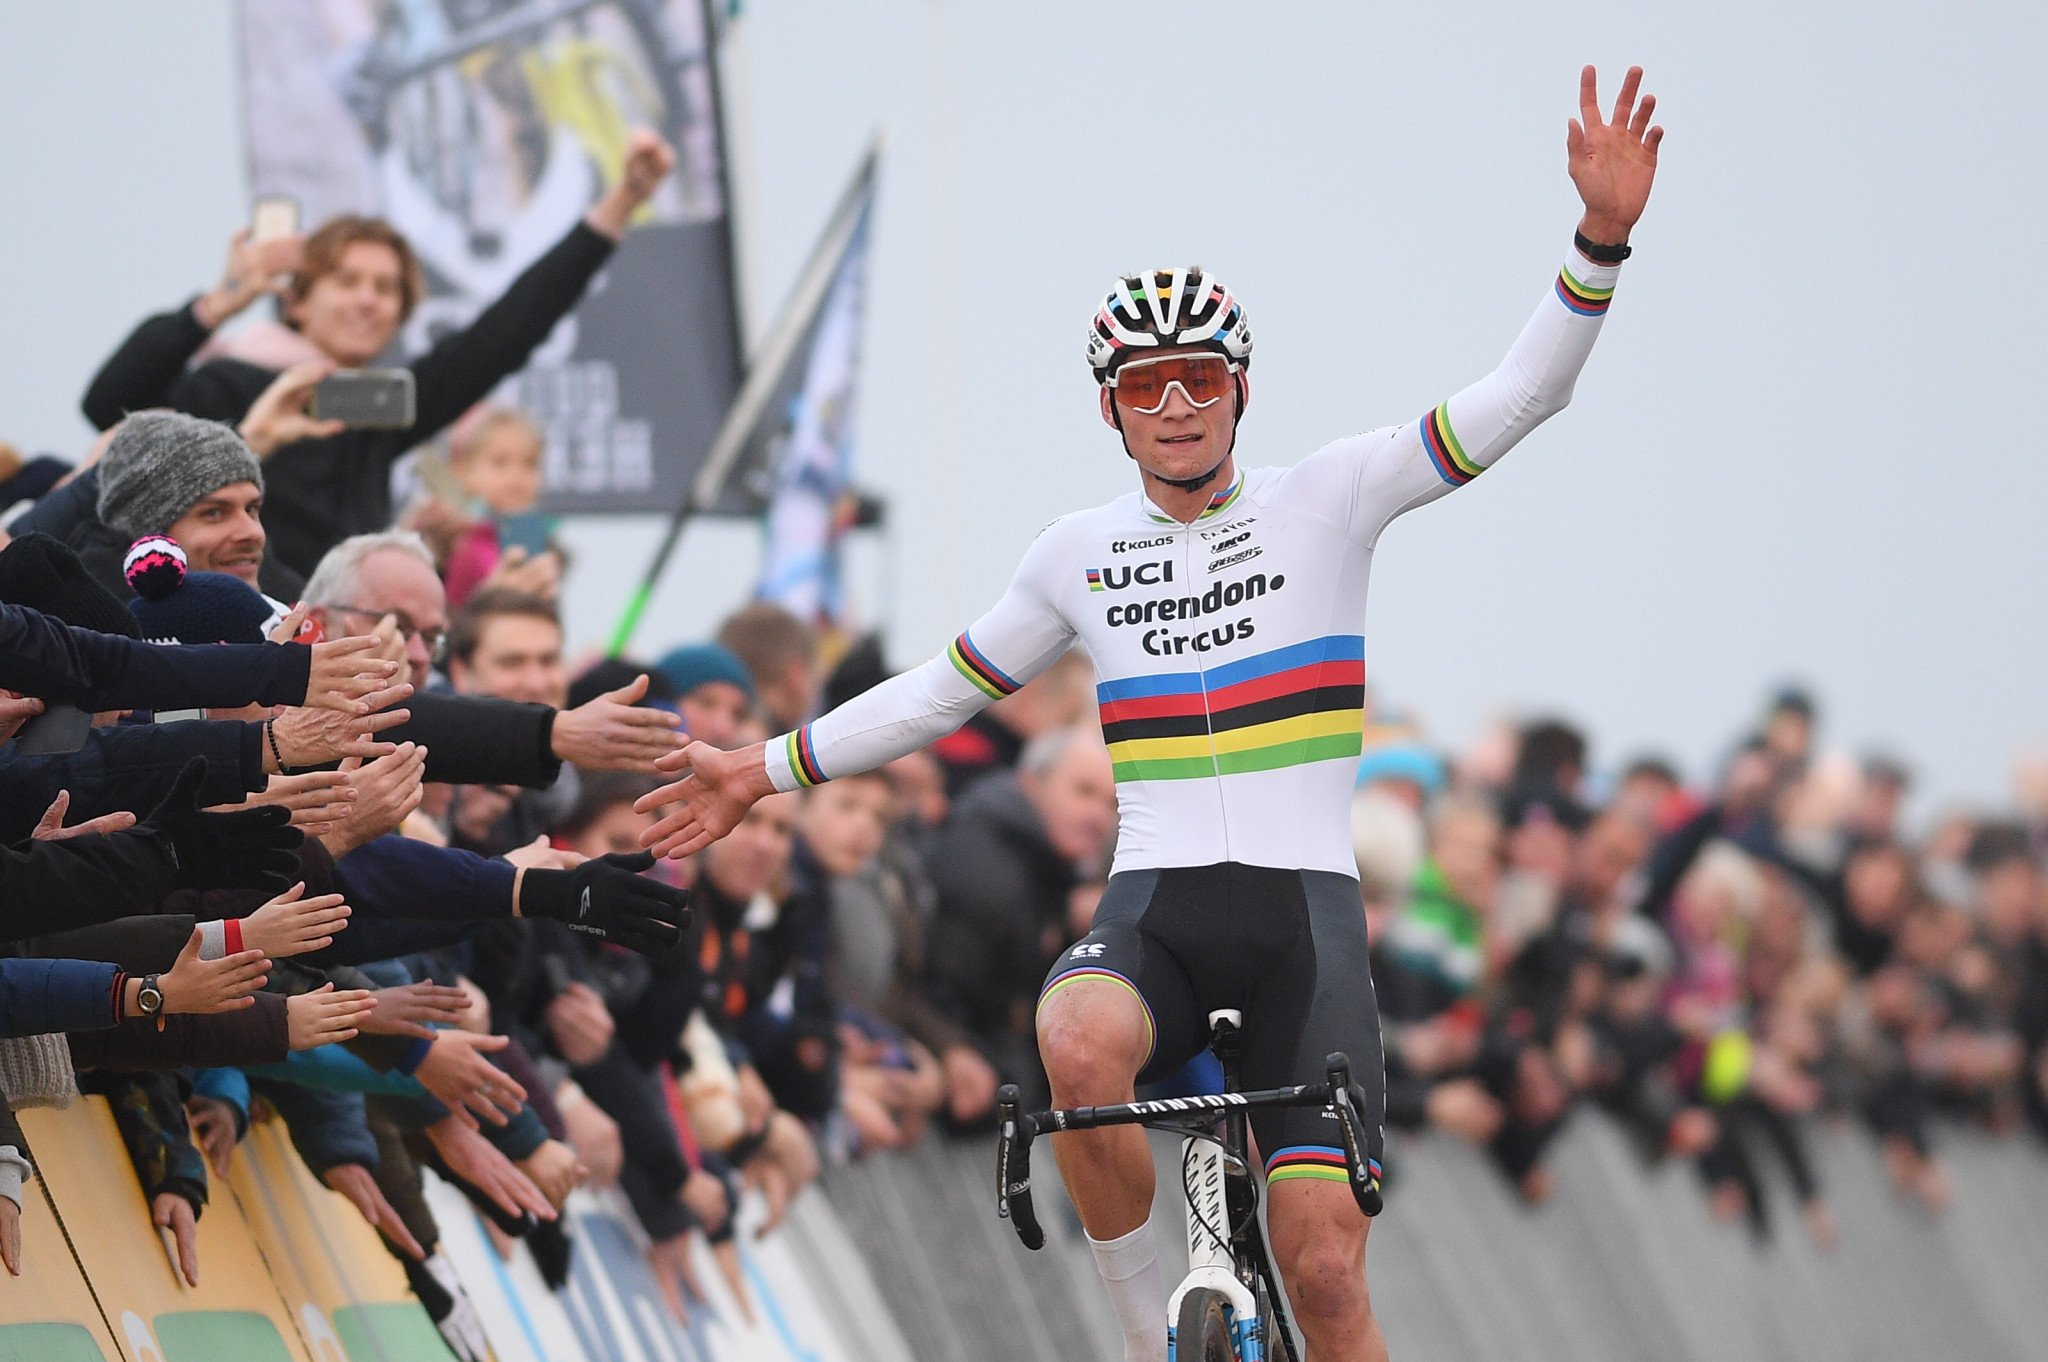 Van der Poel achieves hat-trick of UCI Cyclo-cross World Cup wins in Koksijde